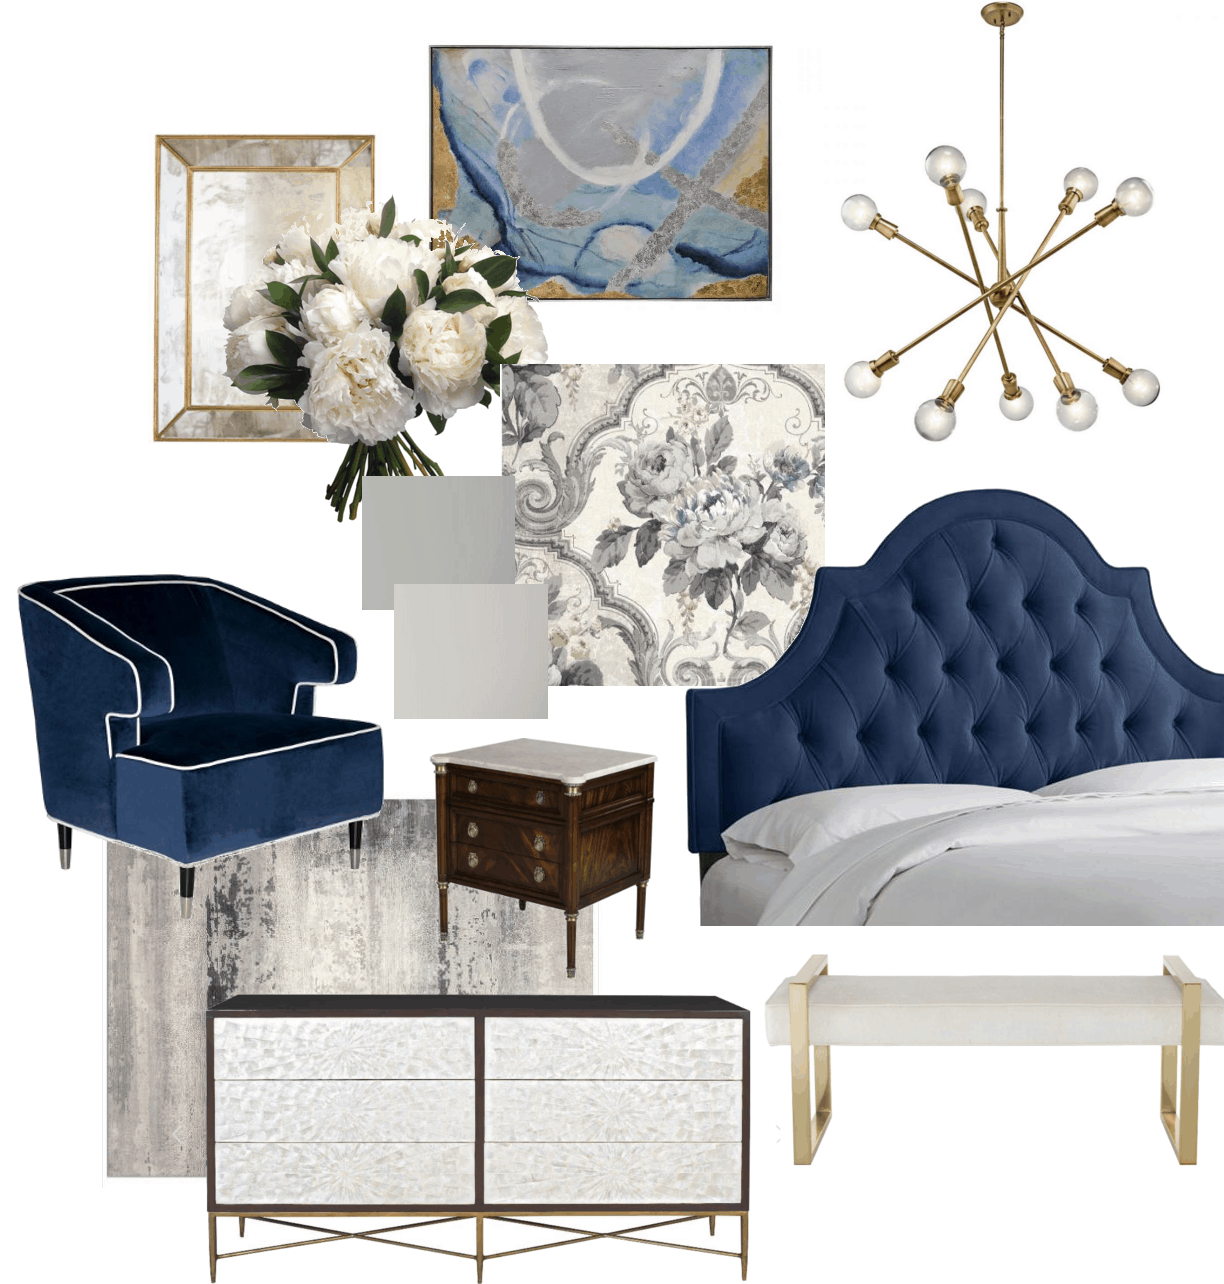 Evelyn's Luxurious Bedroom Design Board